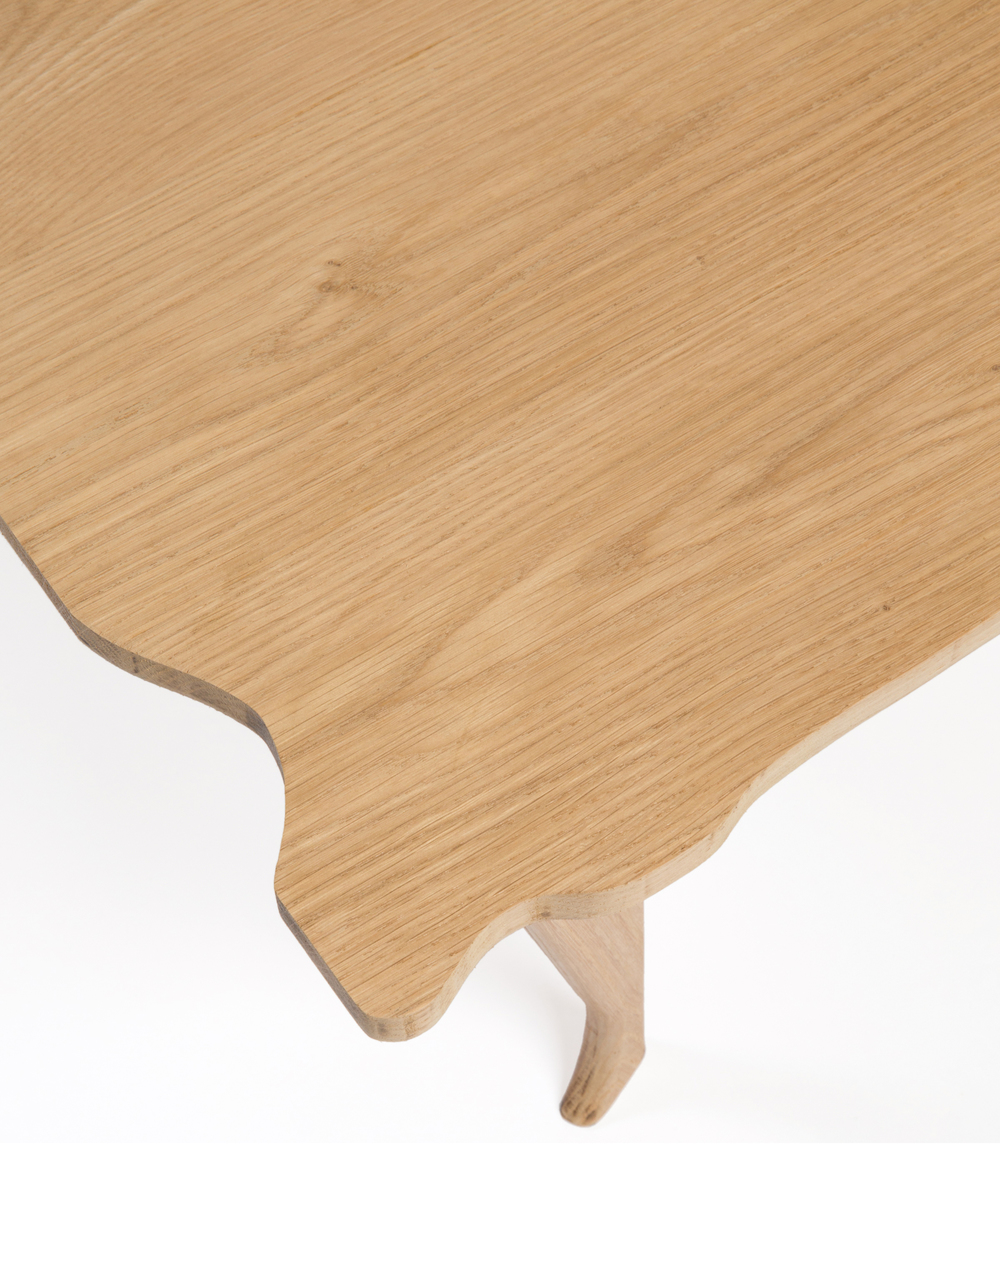 Forest Shadow Table by Ethan Abramson 2.jpg